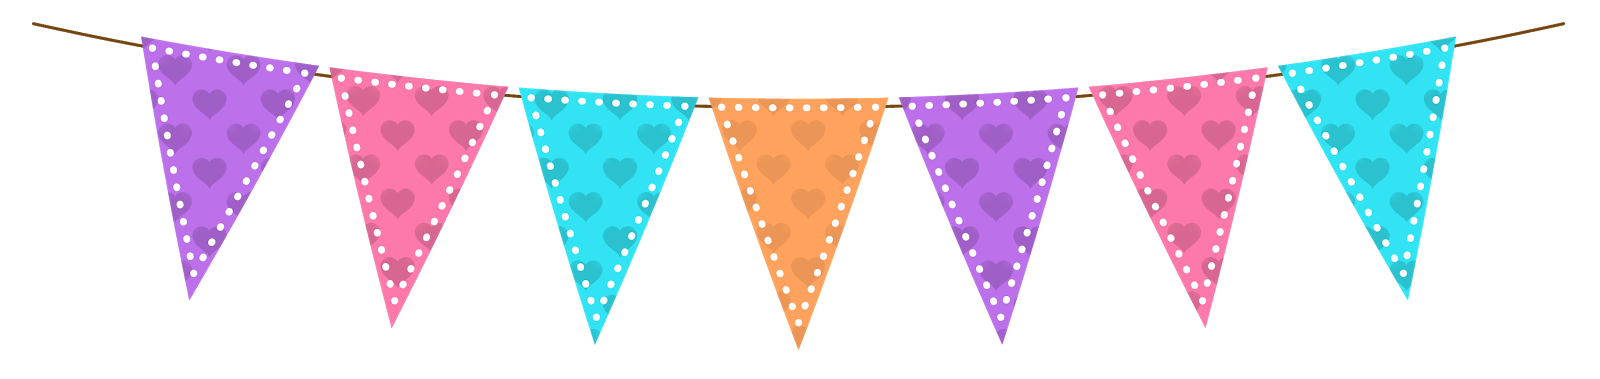 collection of png. Festival clipart bunting